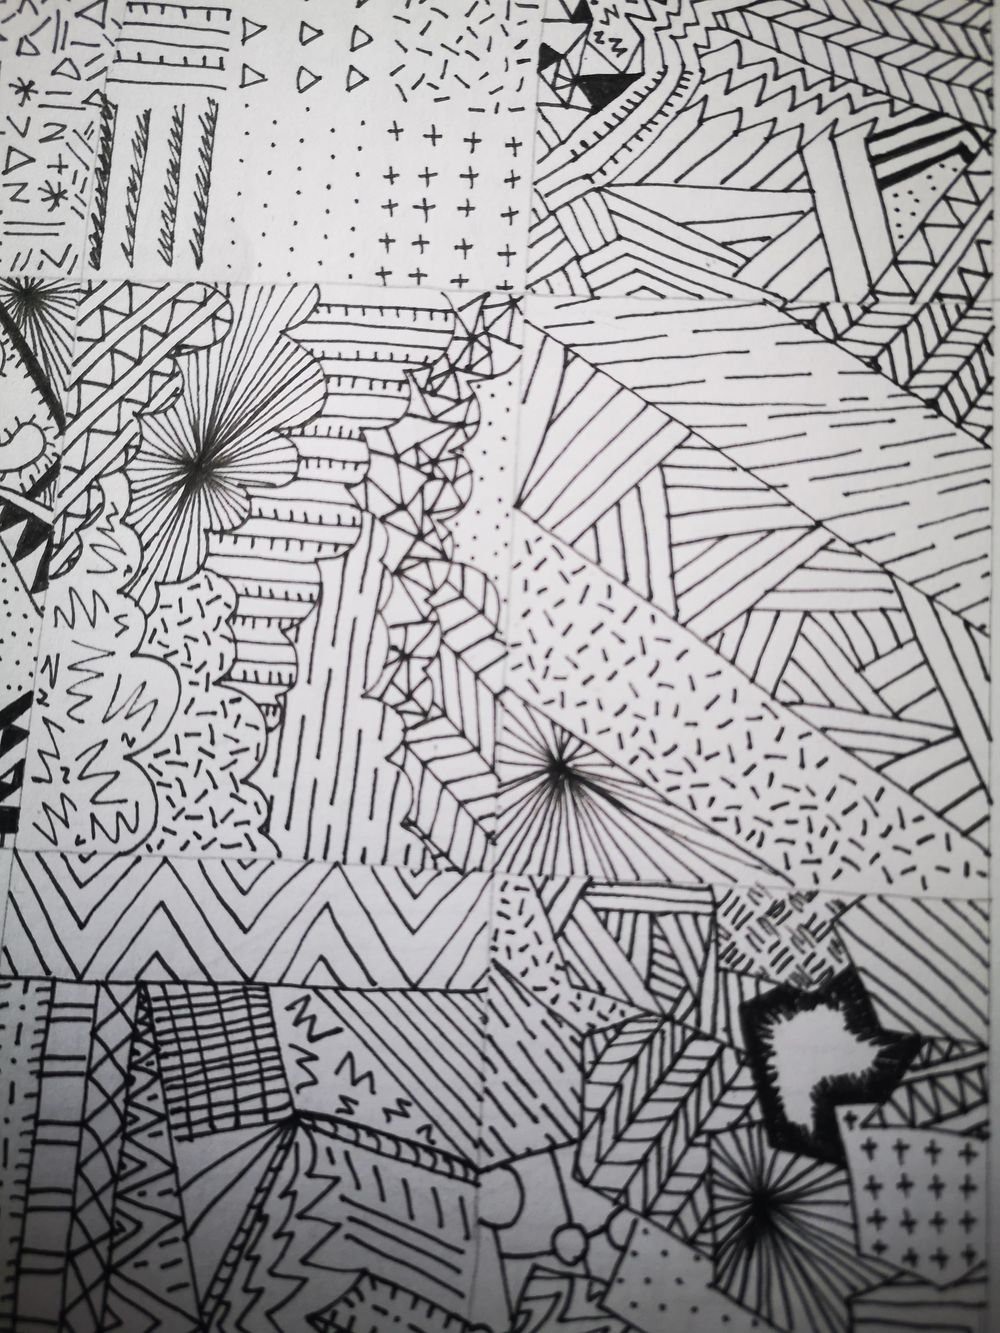 Doodle! - image 1 - student project